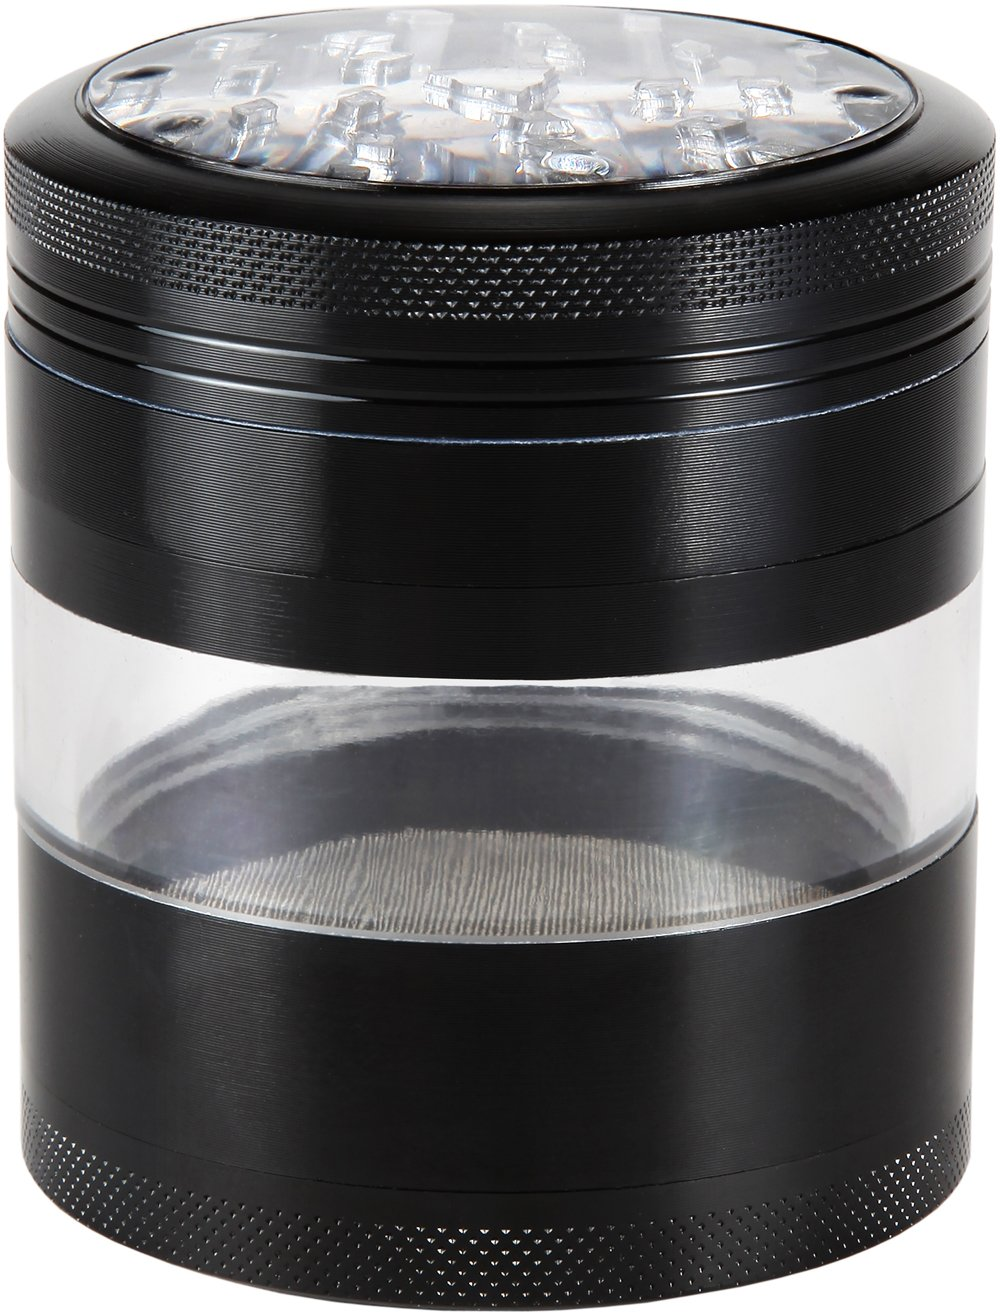 Zip Grinders – Large Herb Grinder – Four Piece with Pollen Catcher